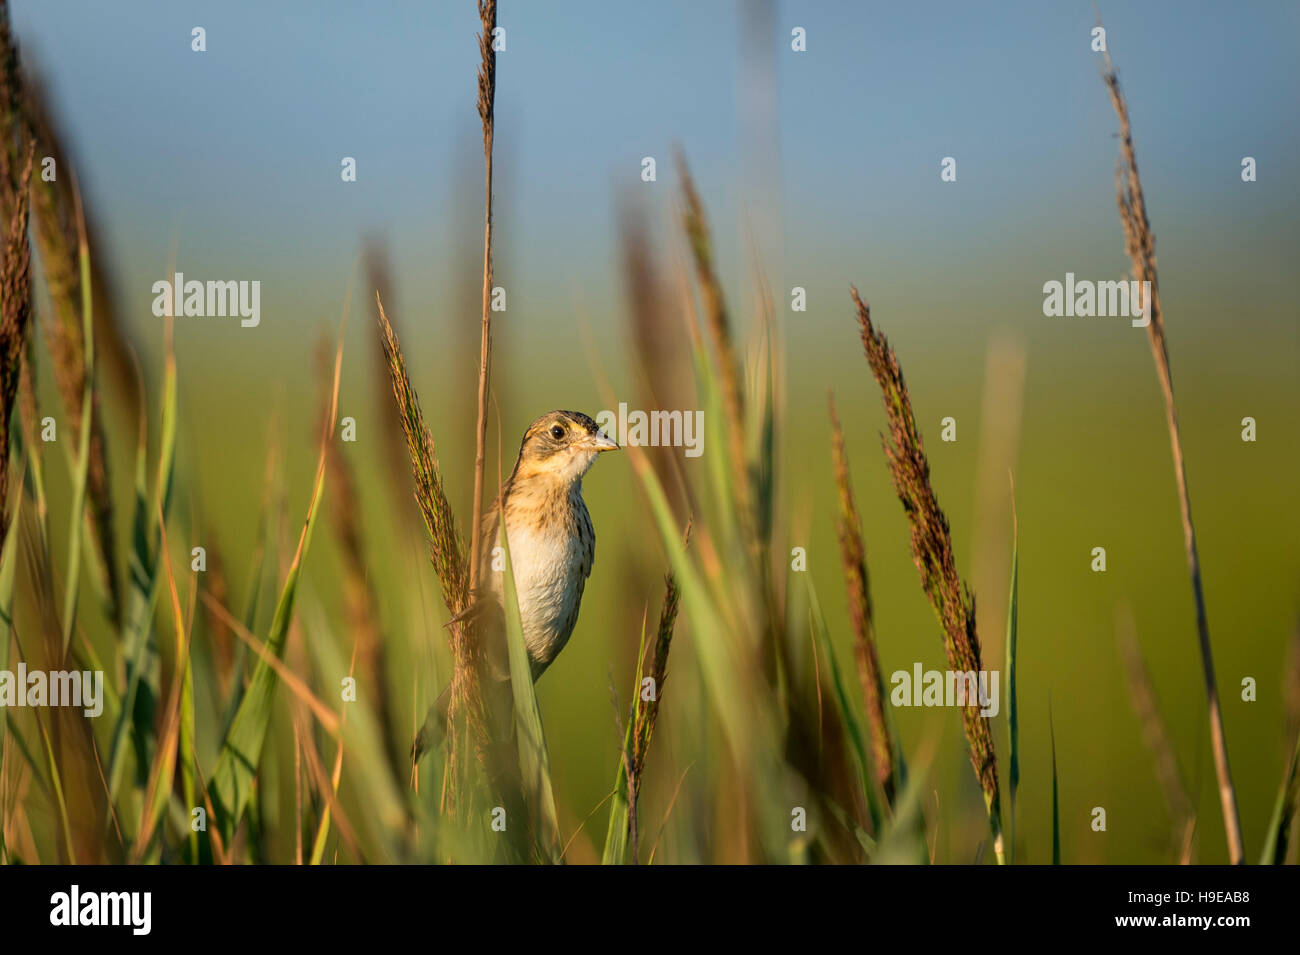 A Seaside Sparrow sits tall on marsh grass in the morning sun. - Stock Image